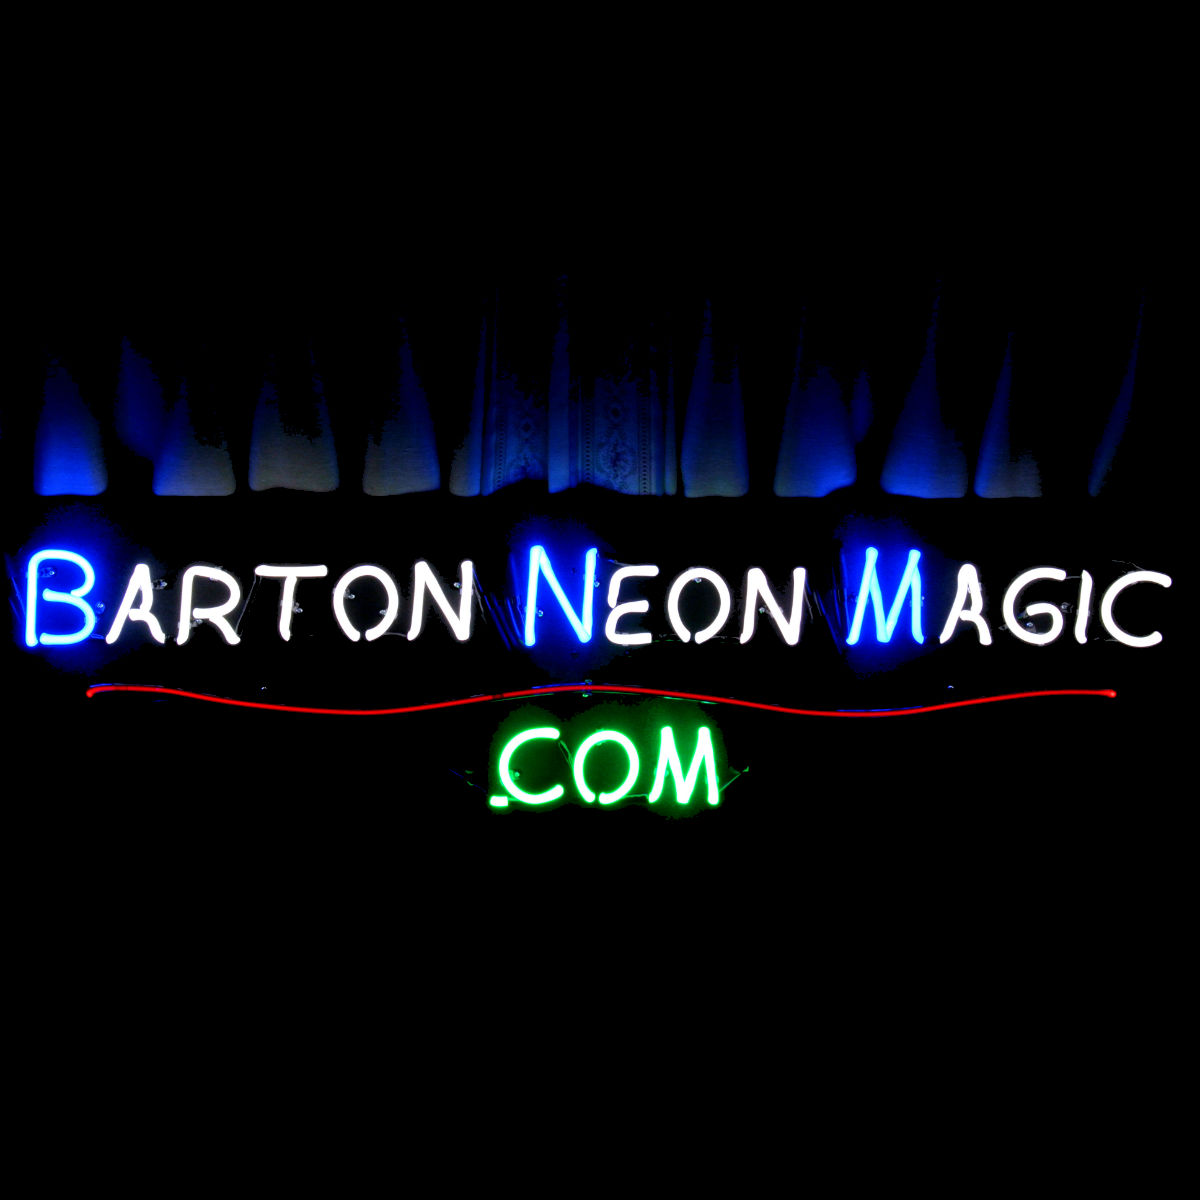 Stunning Hand-blown Neon Light Sculptures by John Barton - Famous USA Neon Glass Artist - BartonNeonMagic.com